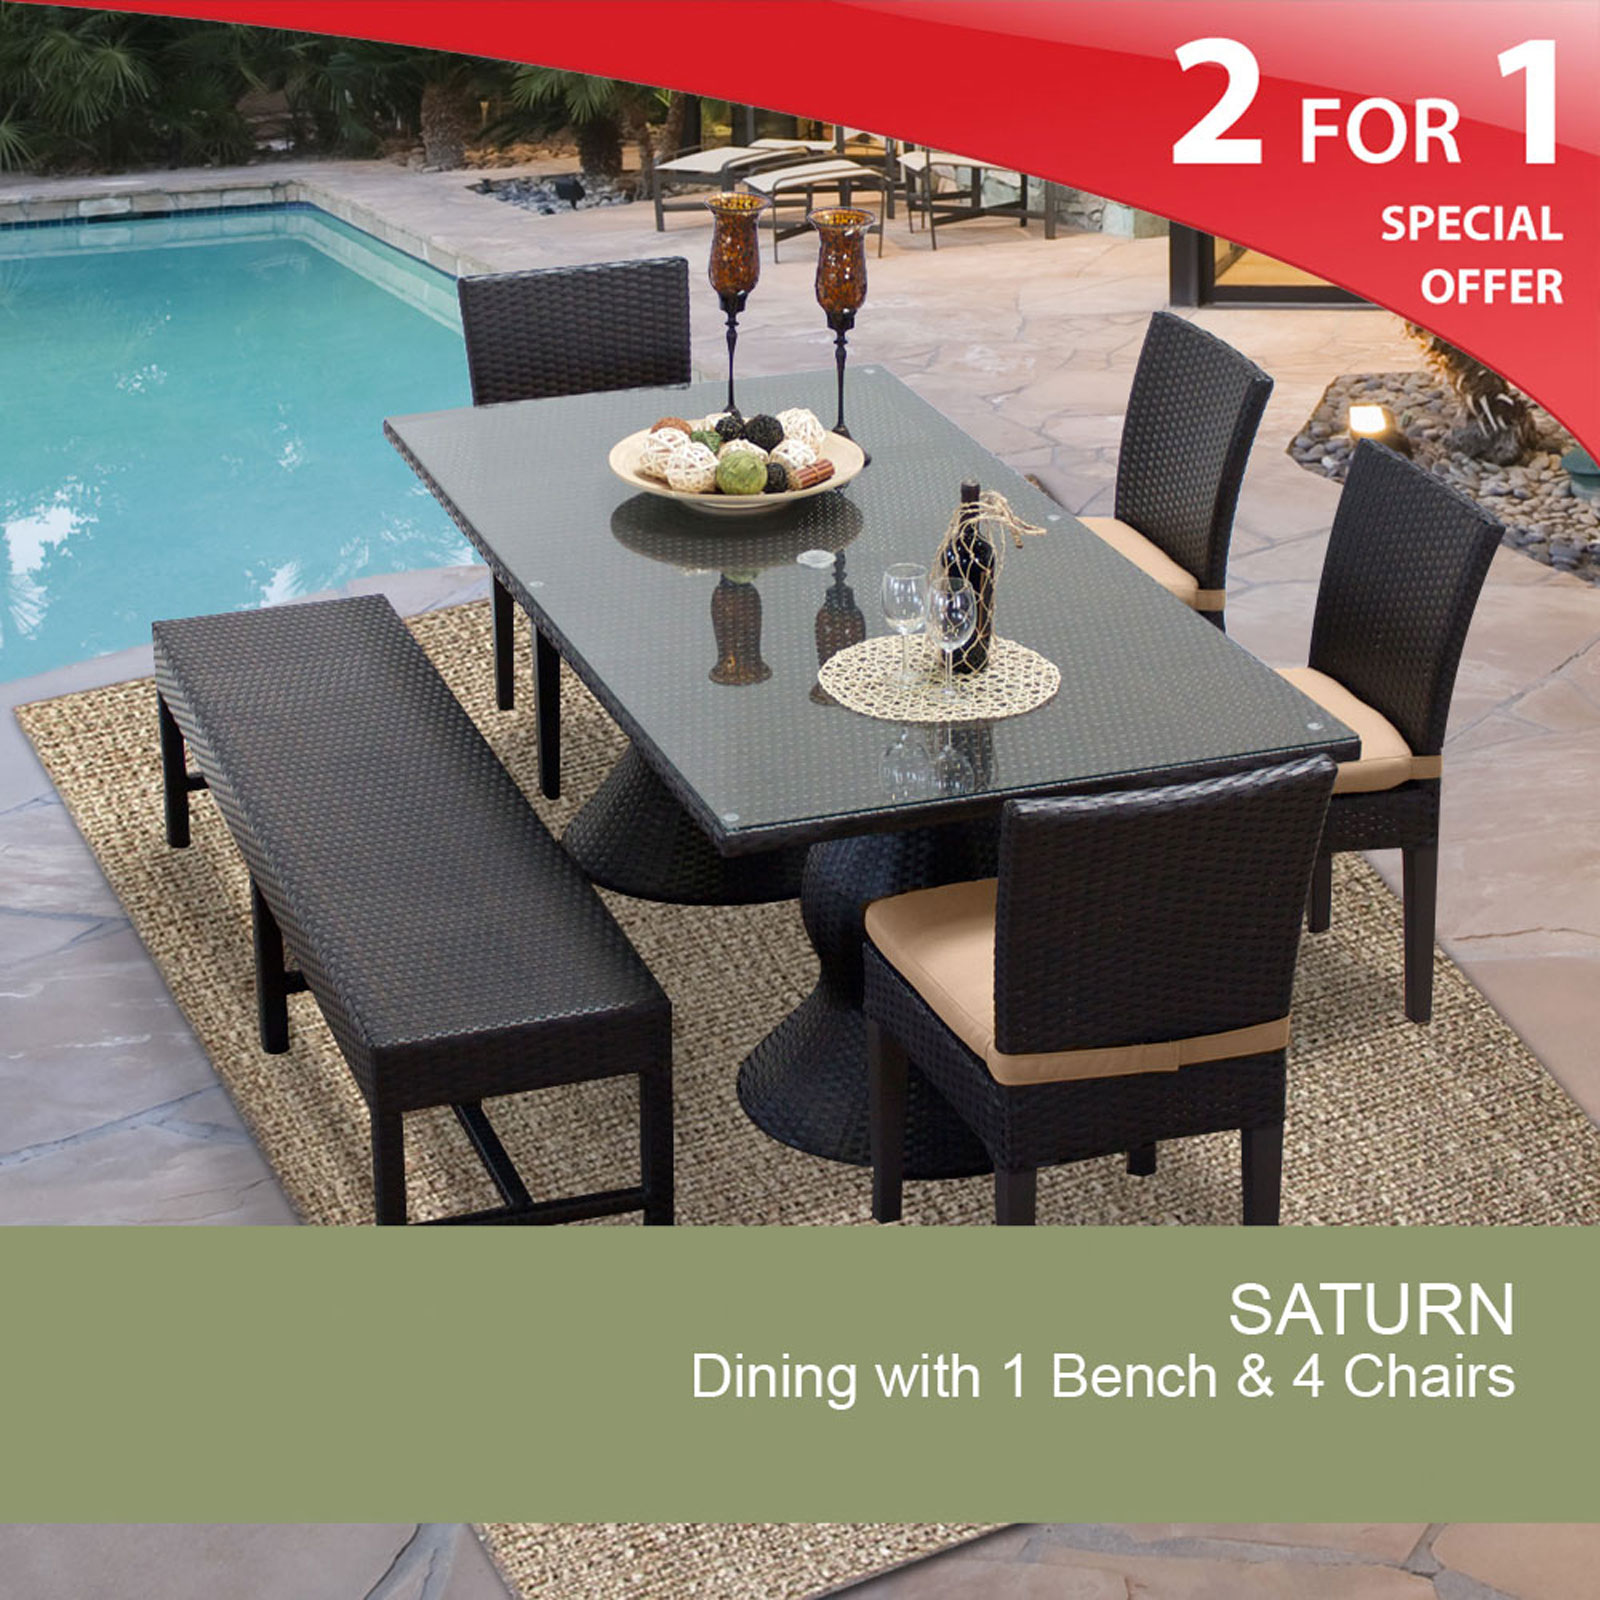 Saturn rectangular outdoor patio dining table with 4 chairs and 1 bench walmart com